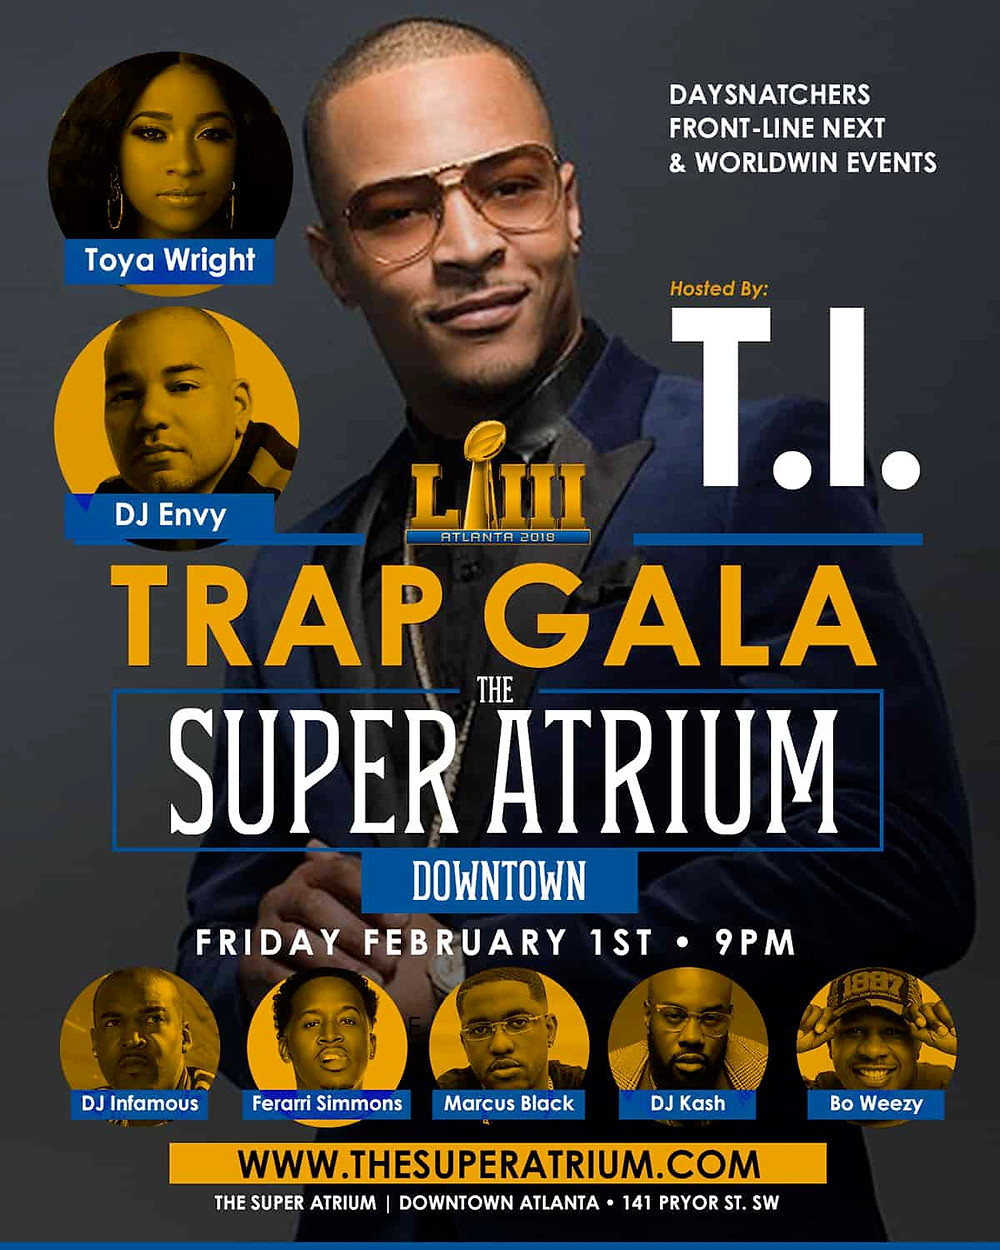 Trap Gala: Hosted By T.I. And Toya Wright Super Bowl Weekend At The Super Atrium